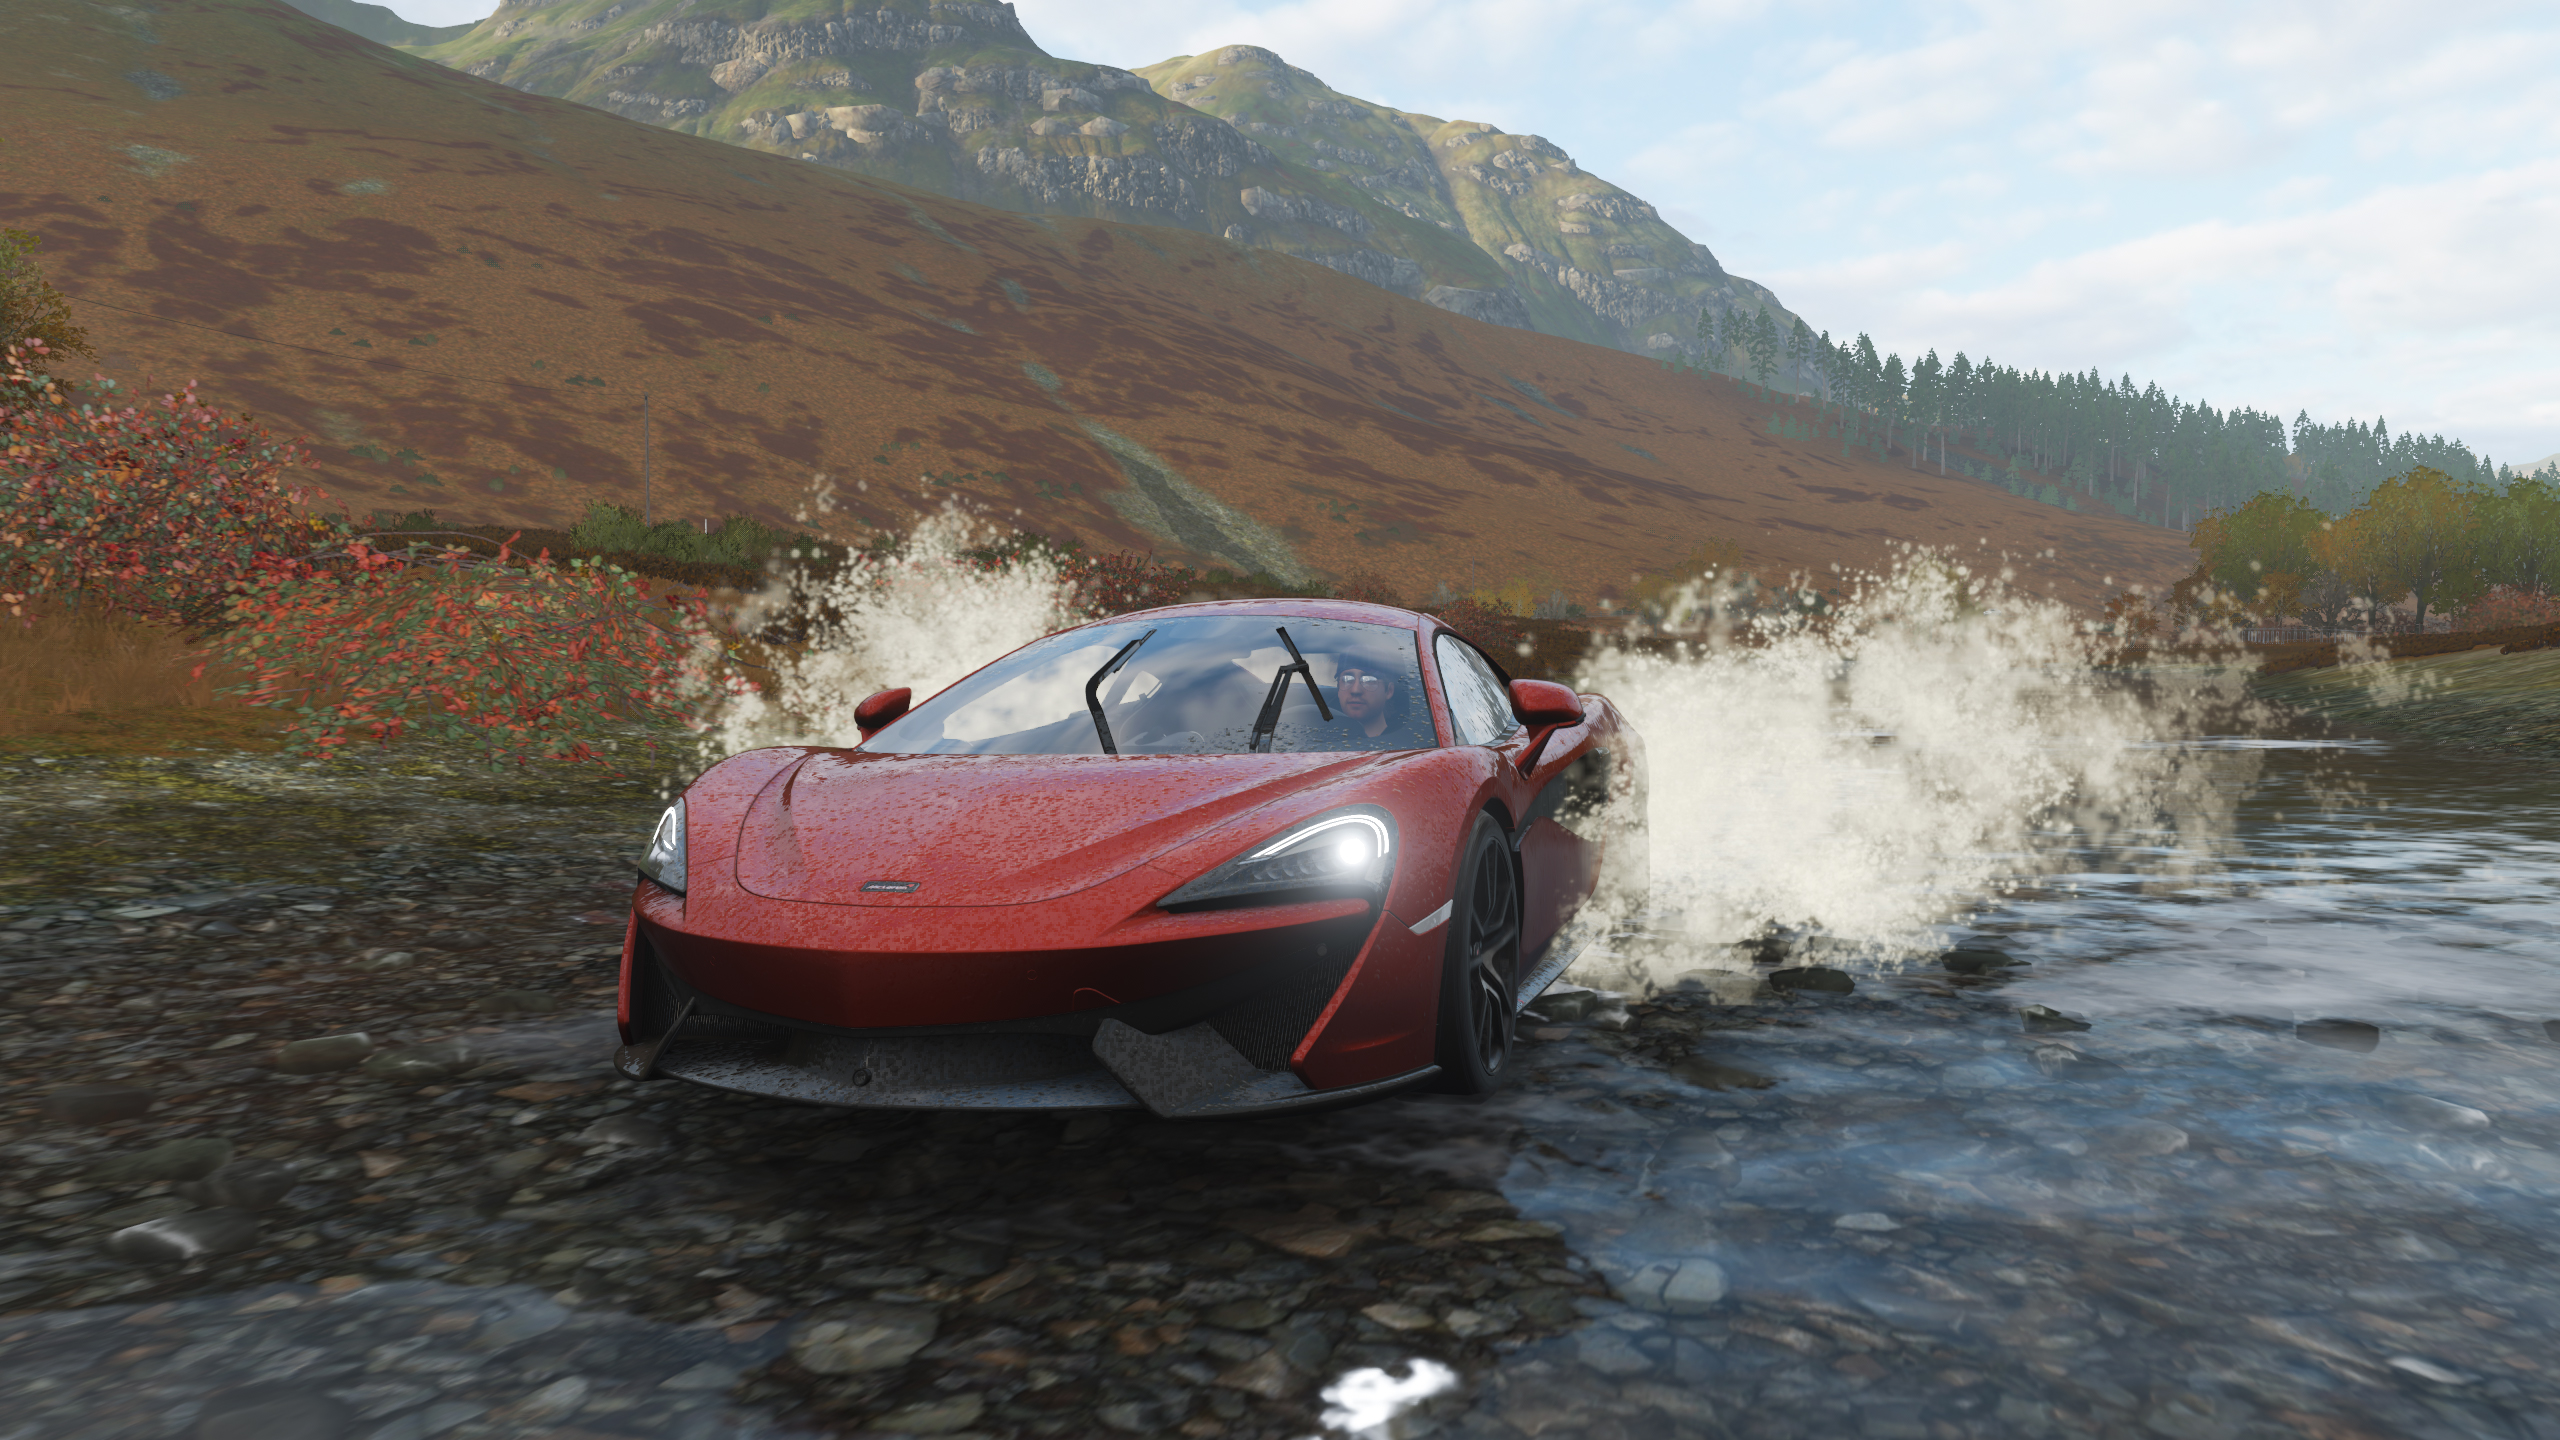 Forza Horizon 4 car list: The best cars for every season and PvP